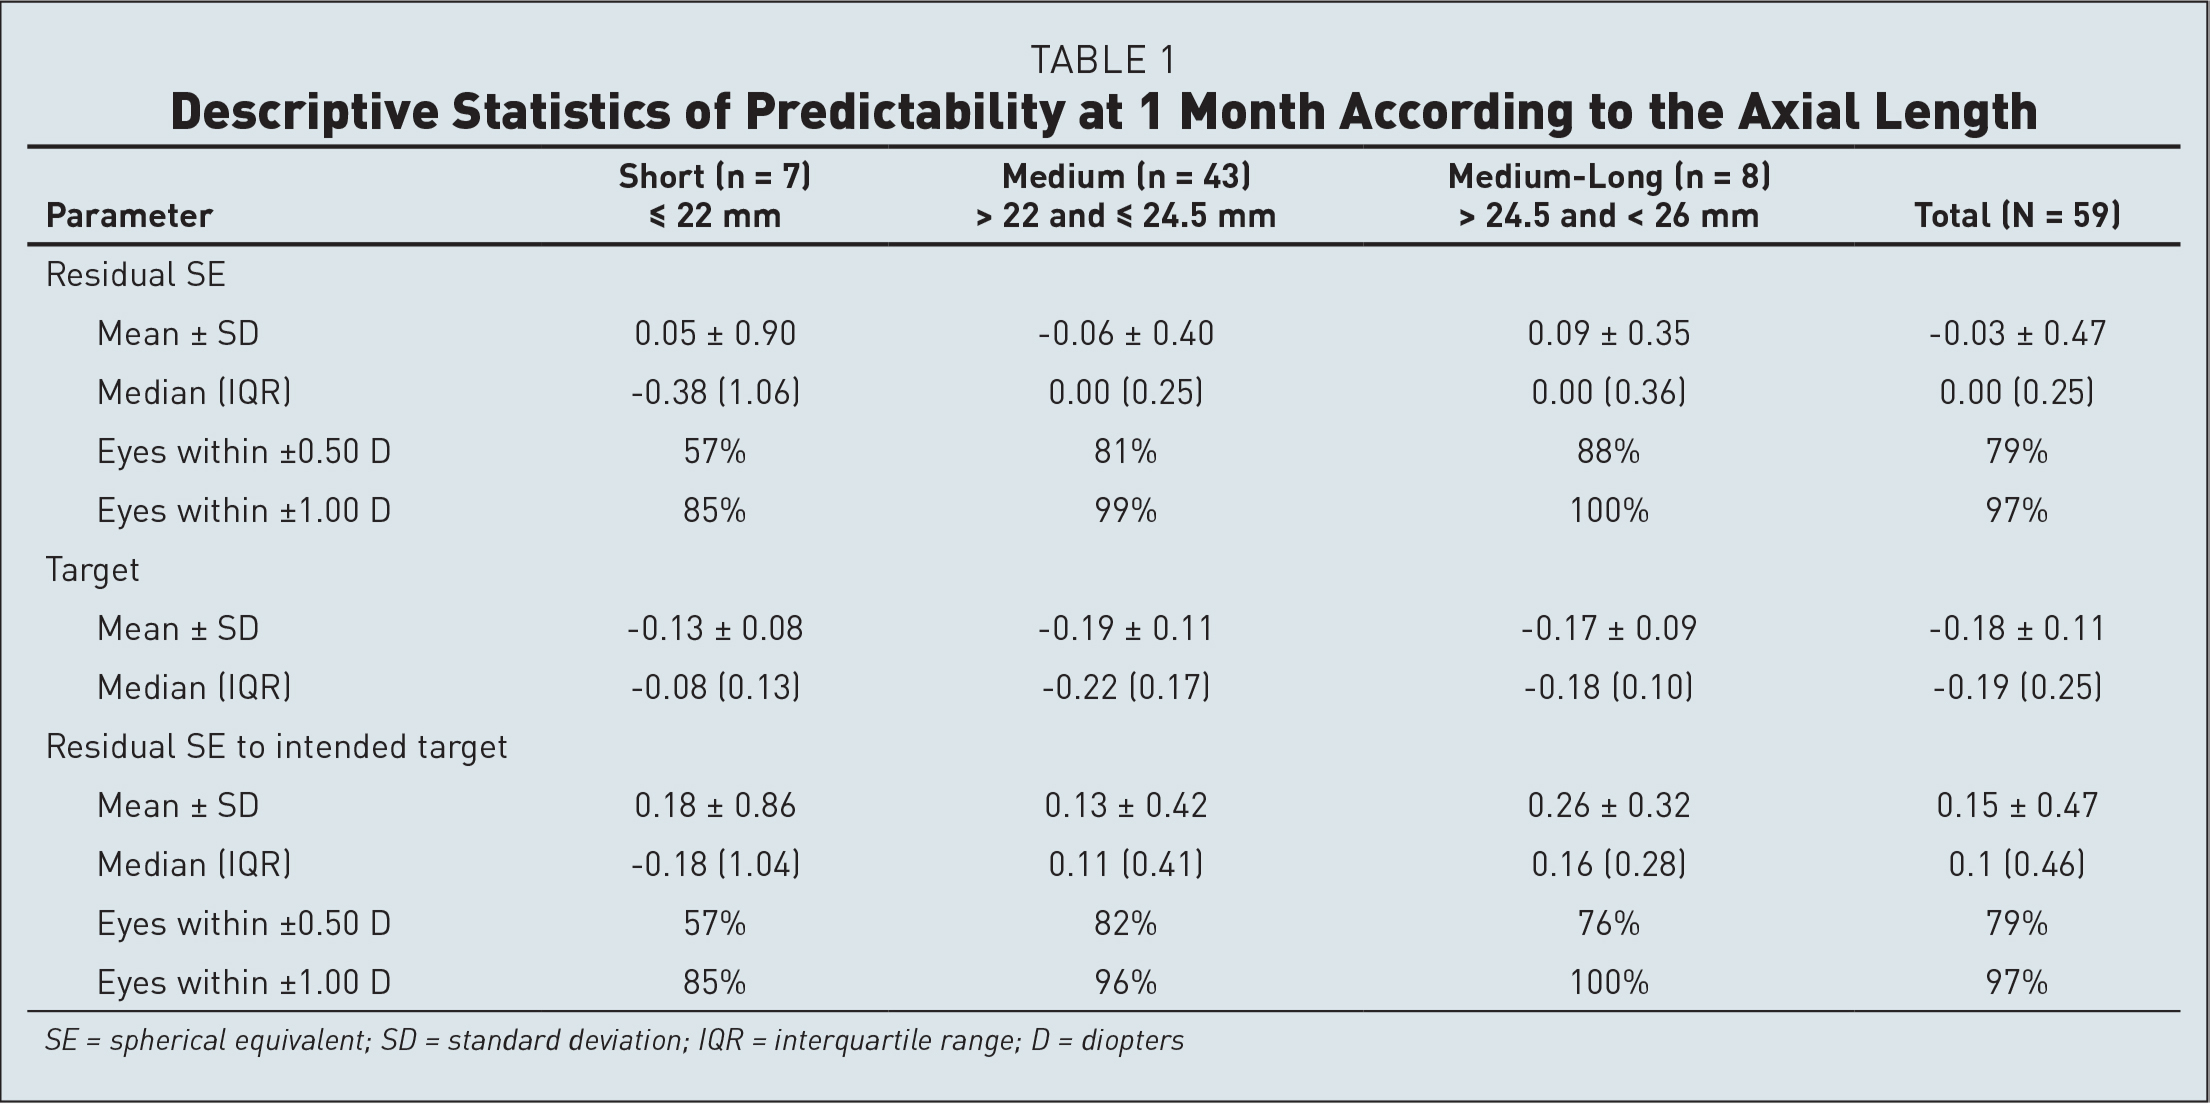 Descriptive Statistics of Predictability at 1 Month According to the Axial Length